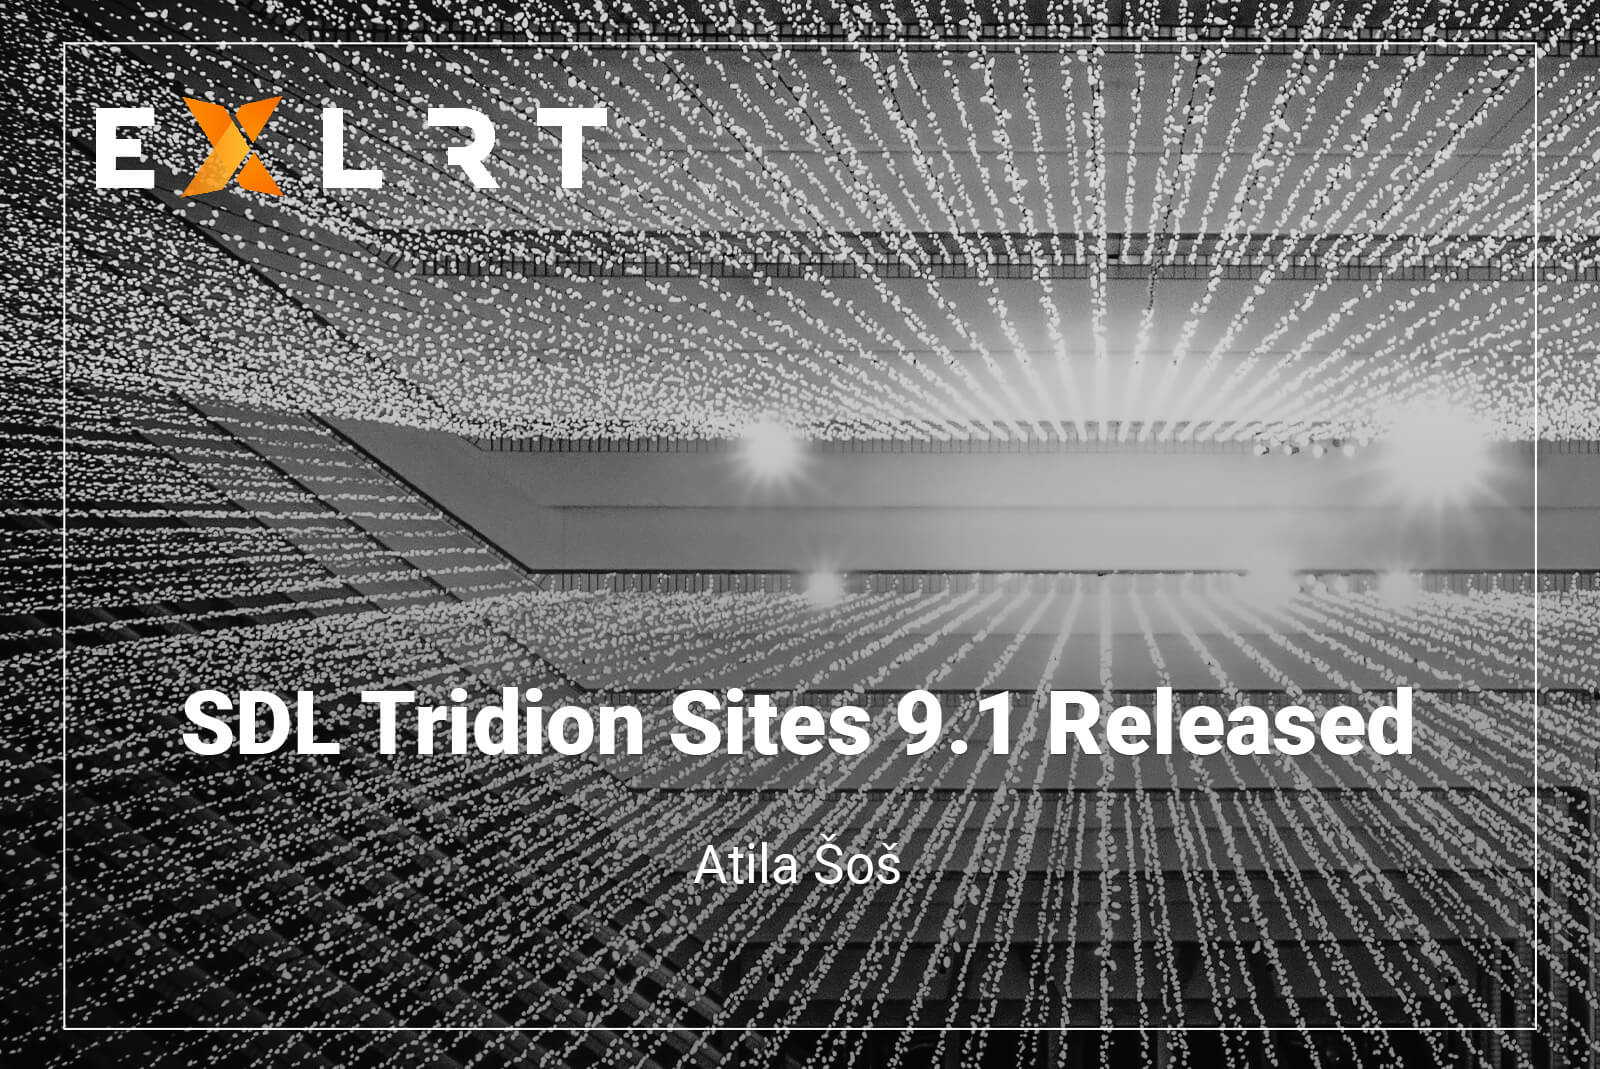 SDL Tridion Sites 9.1 Released